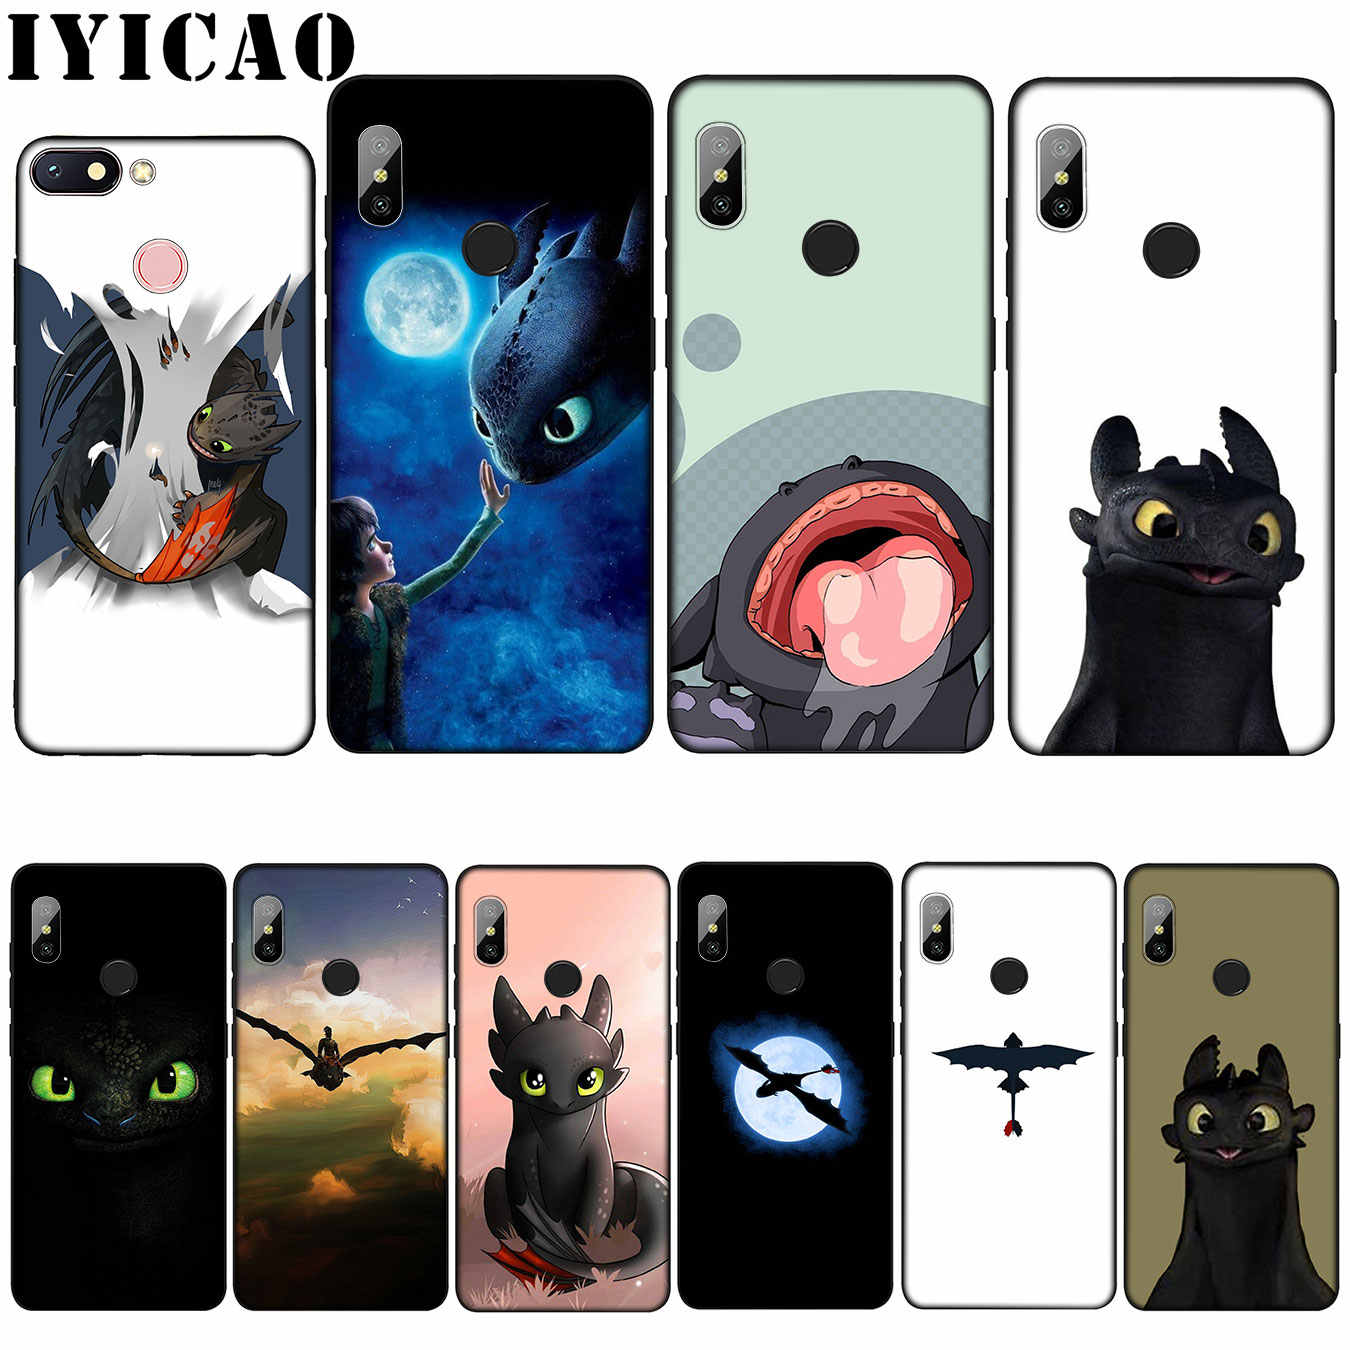 IYICAO sdentato How To Train Your Dragon Custodia Morbida per Xiao mi mi 9 8 A2 lite A1 6 POCOPHONE f1 MAX 3 mi 9 mi 8 mi a2